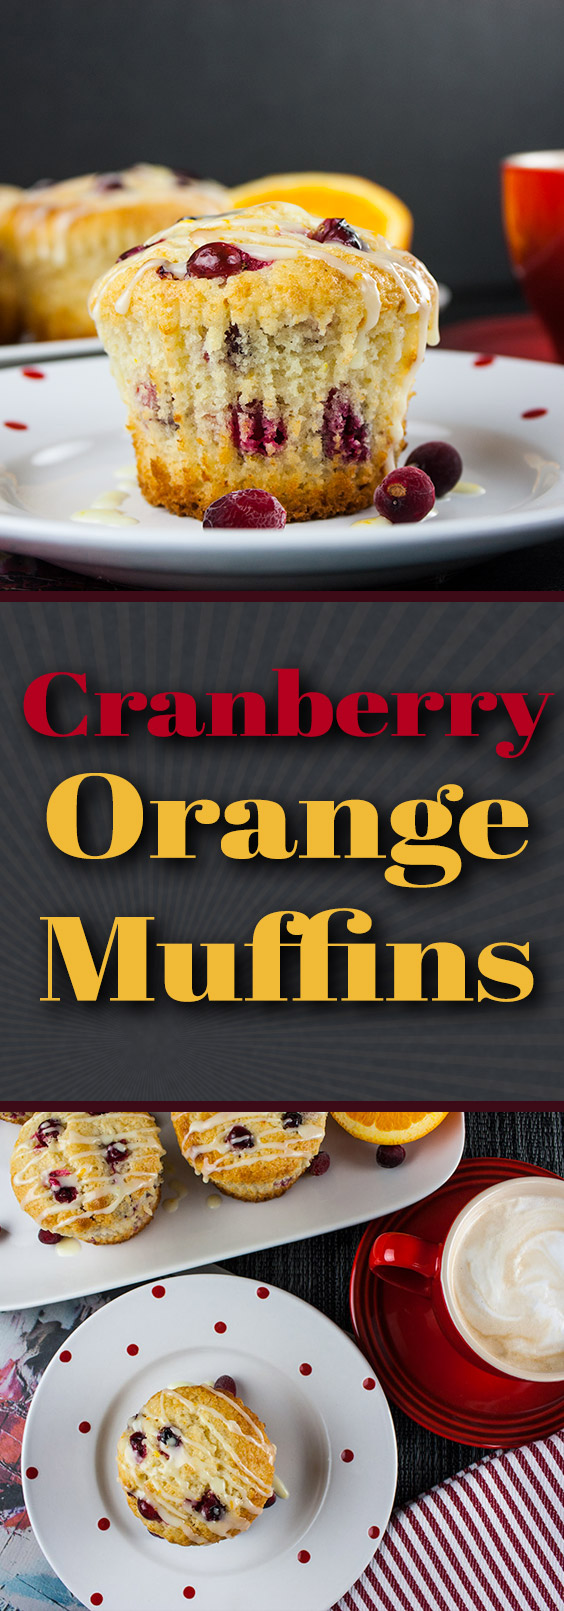 Cranberry Orange Muffins - Simply the best. A sweet buttery muffin filled with tart, juicy cranberries, orange zest, and an orange glaze.